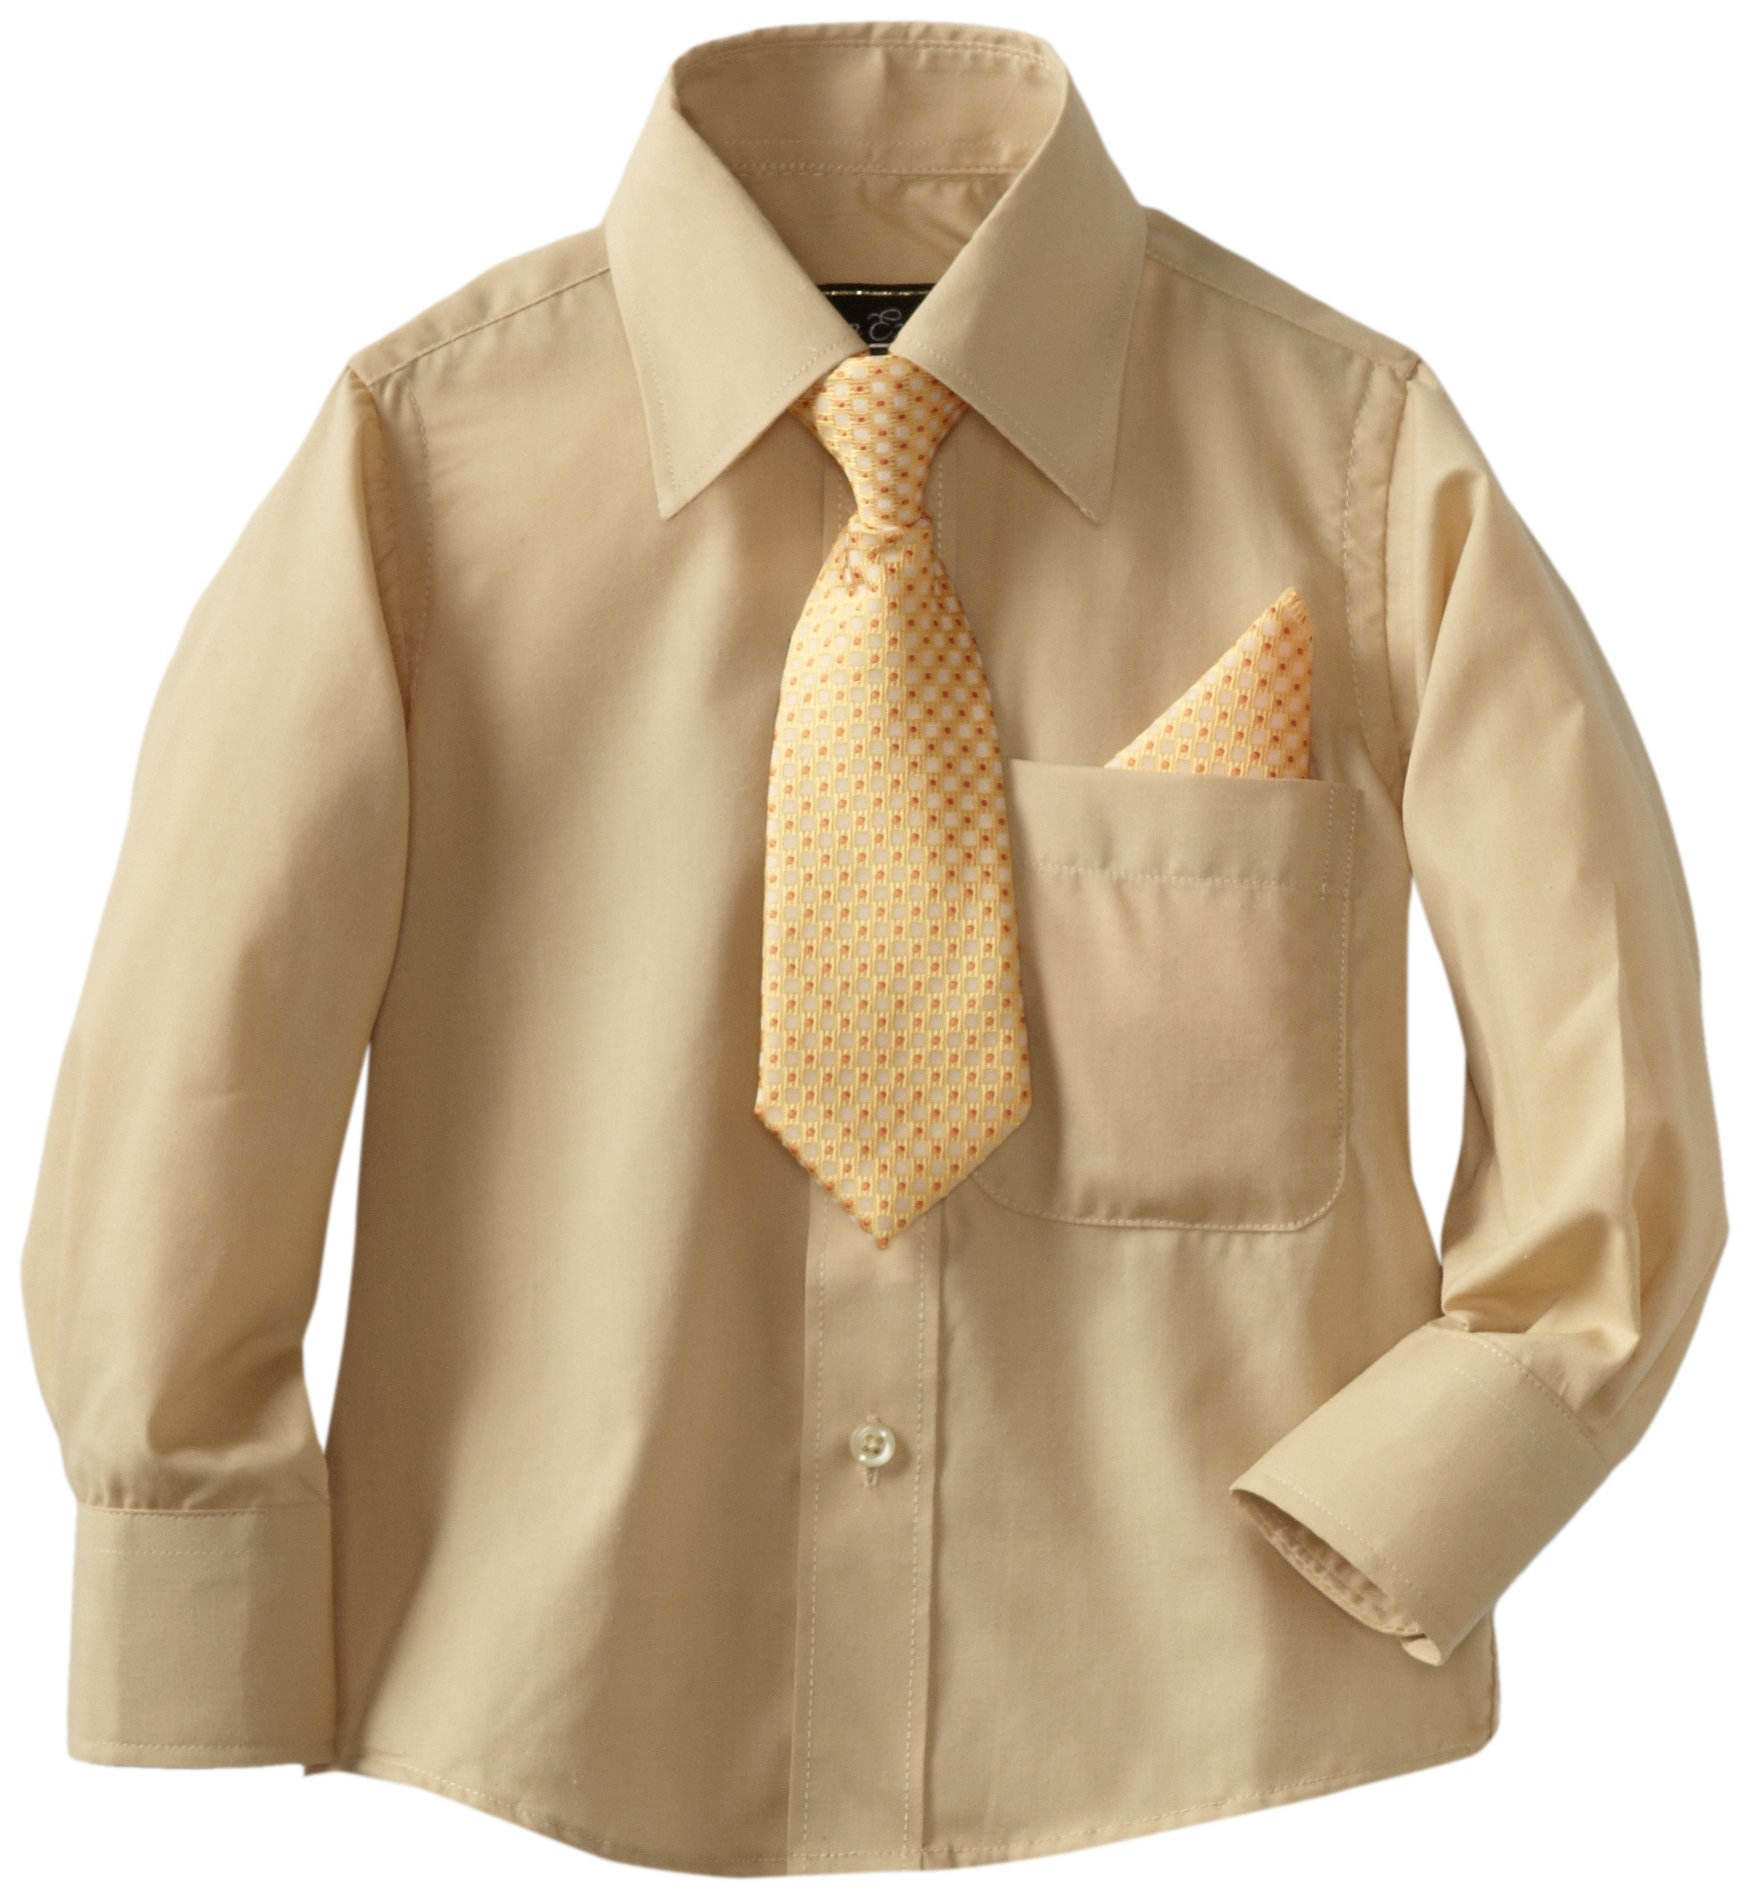 American Exchange Little Boys' Little Dress Shirt With Tie And Pocket Square, Gold, 5